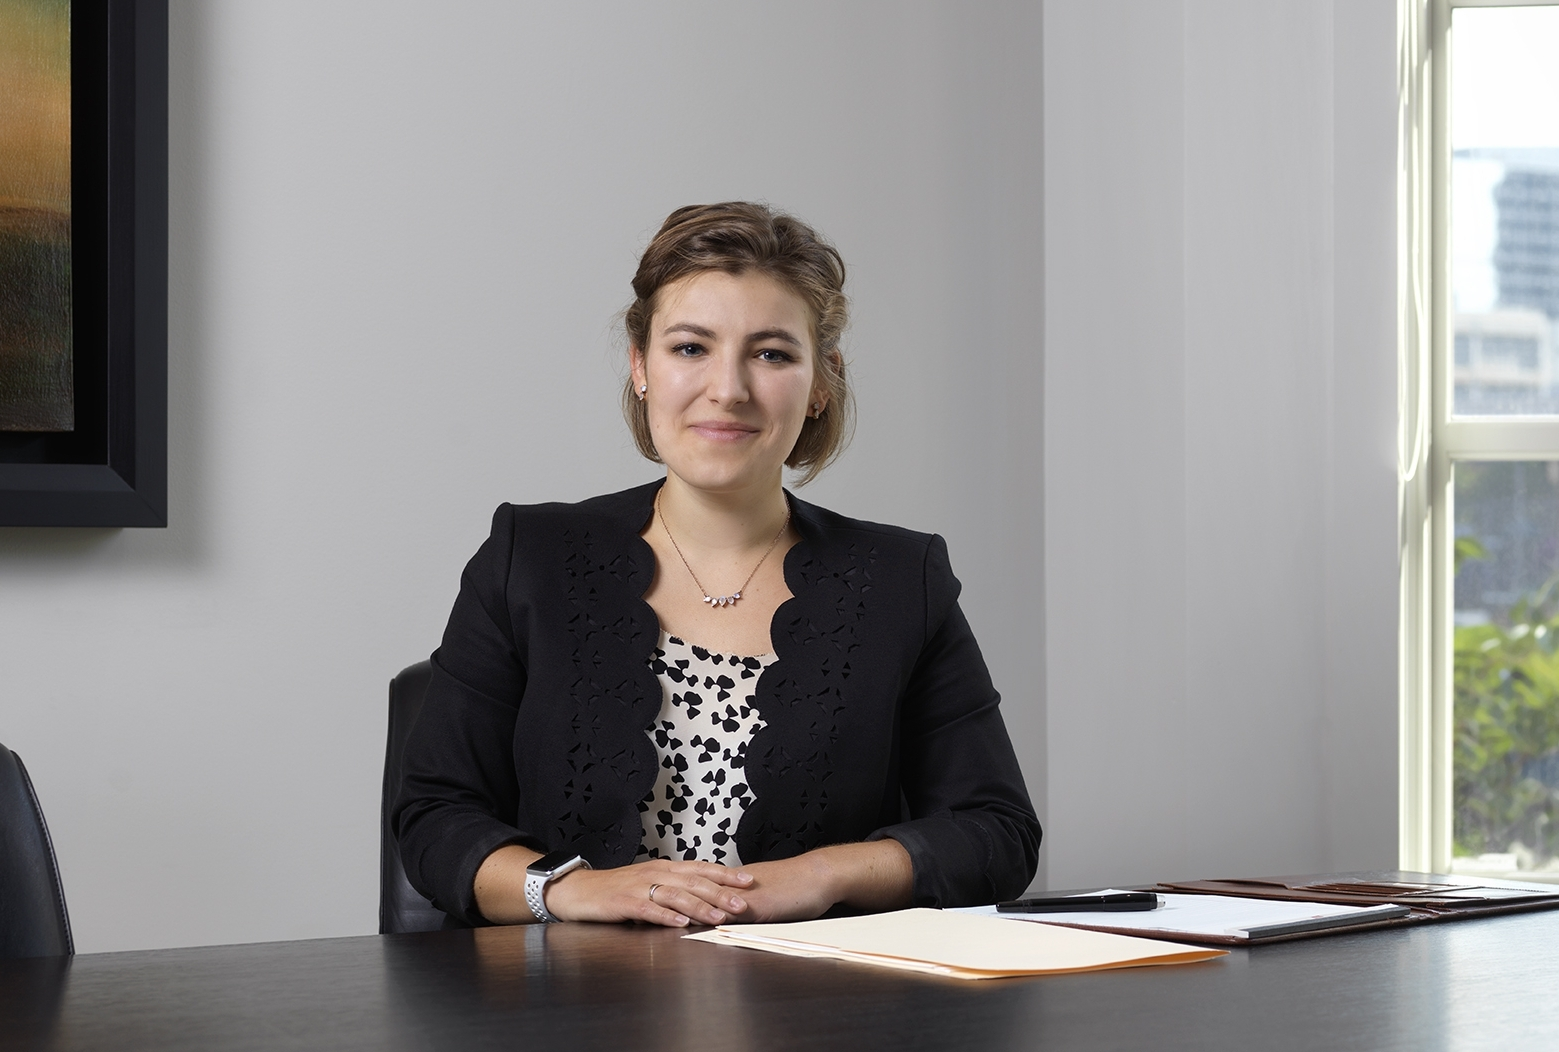 GRACE CARSWELL - CONTACTEmail: gcarswell@rodinlawfirm.comPhone: (403) 216-0329Fax: (403) 216-0970EDUCATIONB.A. 2015, University of VictoriaJ.D. 2018, University of AlbertaBAR ADMISSIONAlberta, 2019